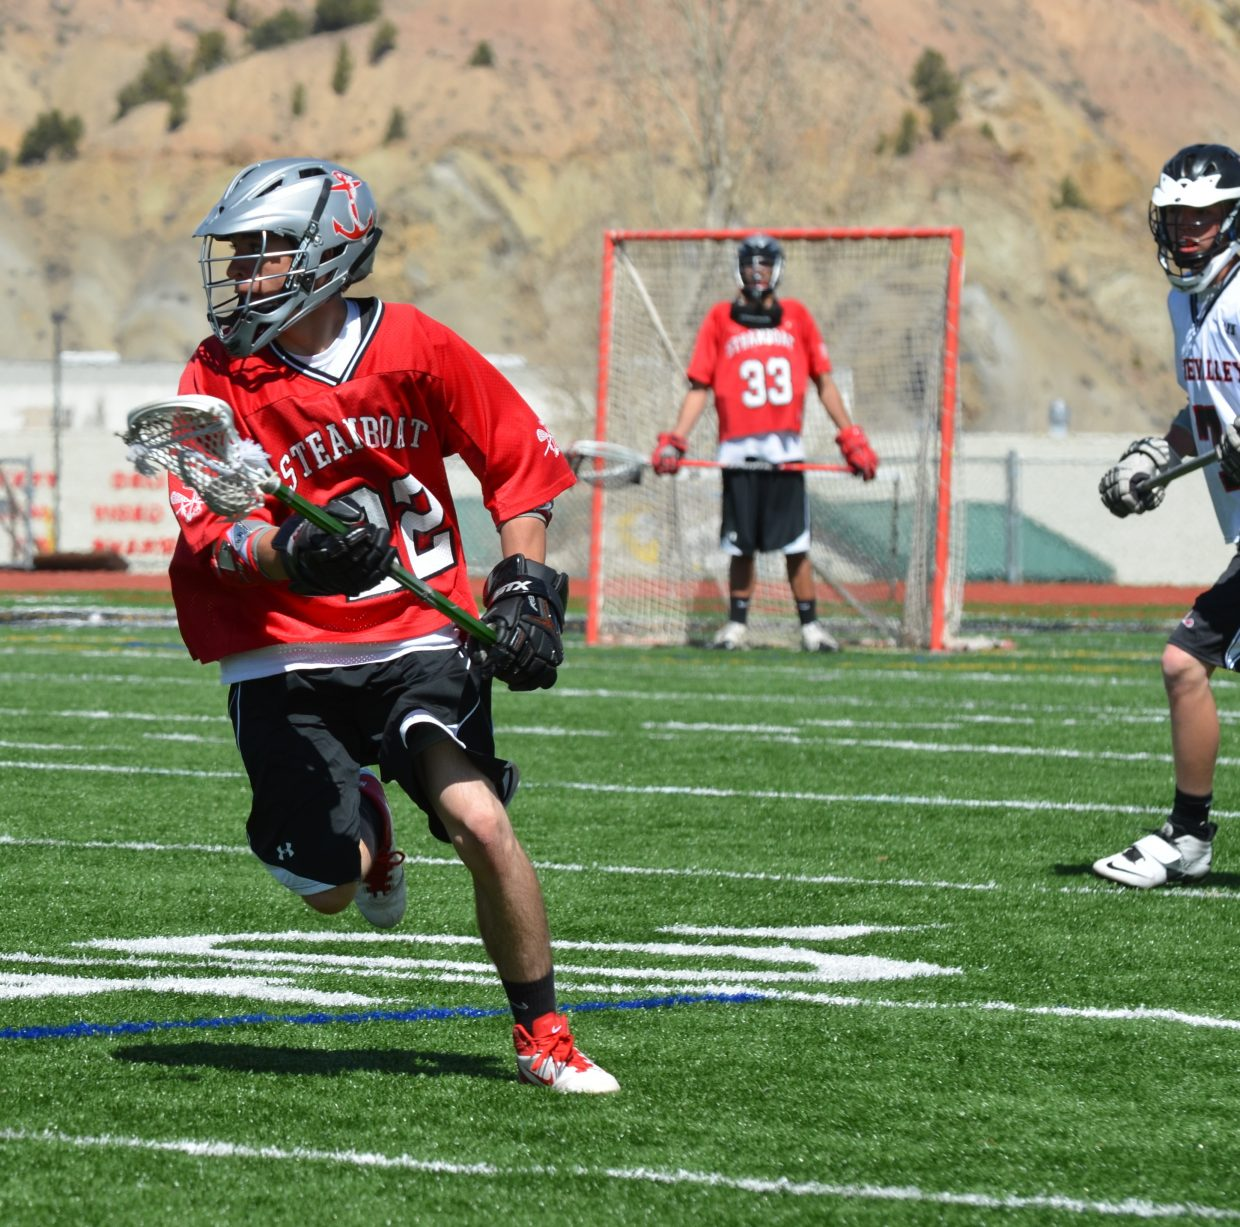 Lacrosse player Aaron Higgins looks to head into the offensive zone.